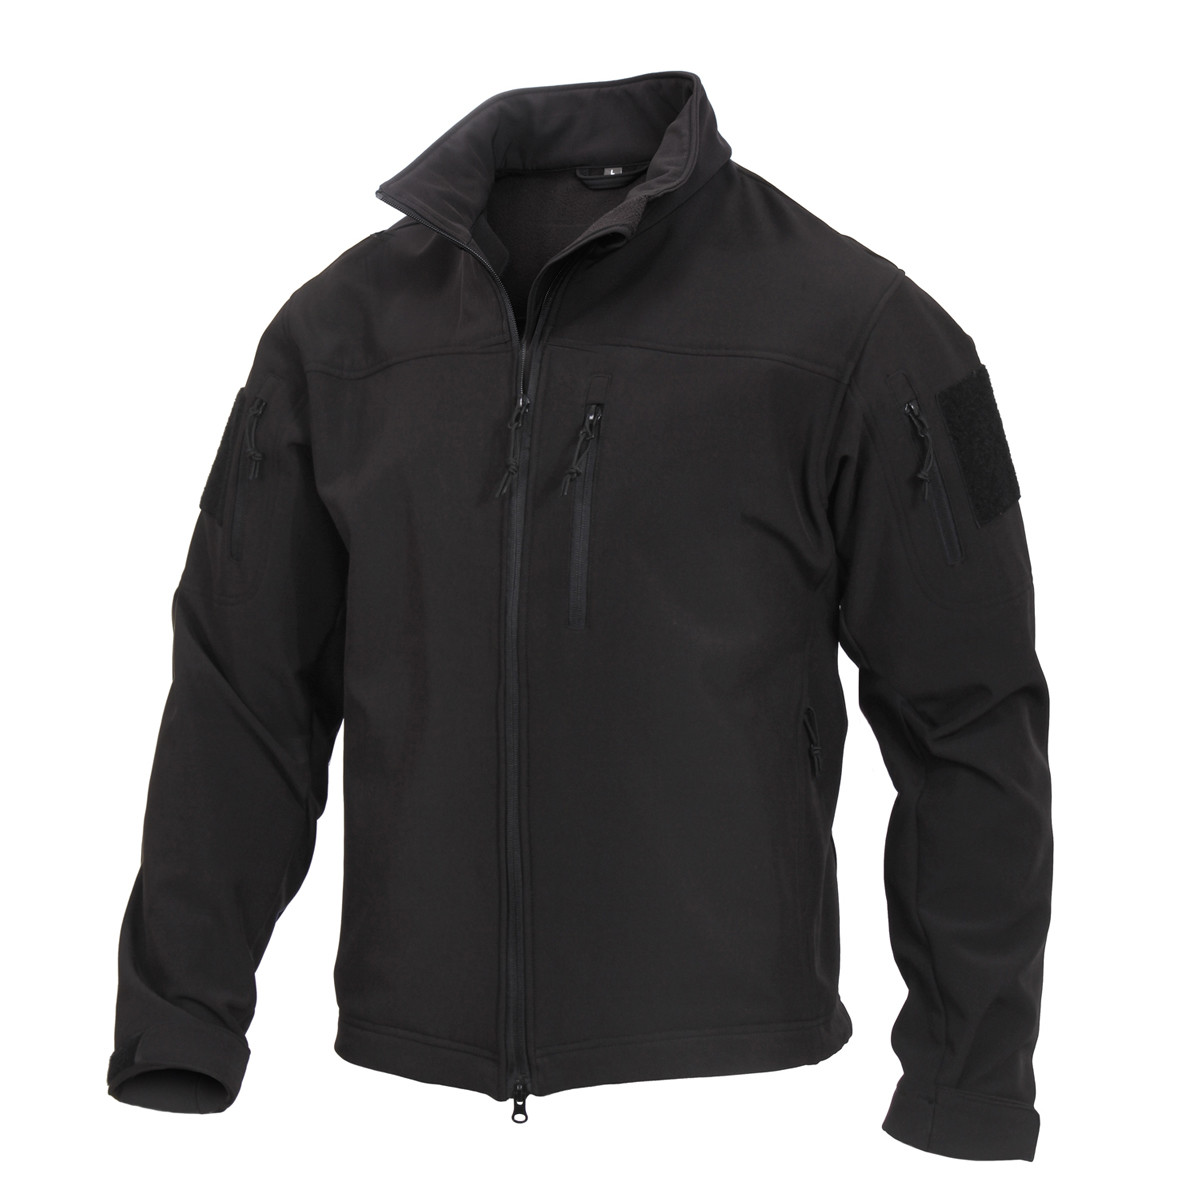 07d57e897a2 Shop Stealth Ops Soft Shell Tactical Jackets - Fatigues Army Navy